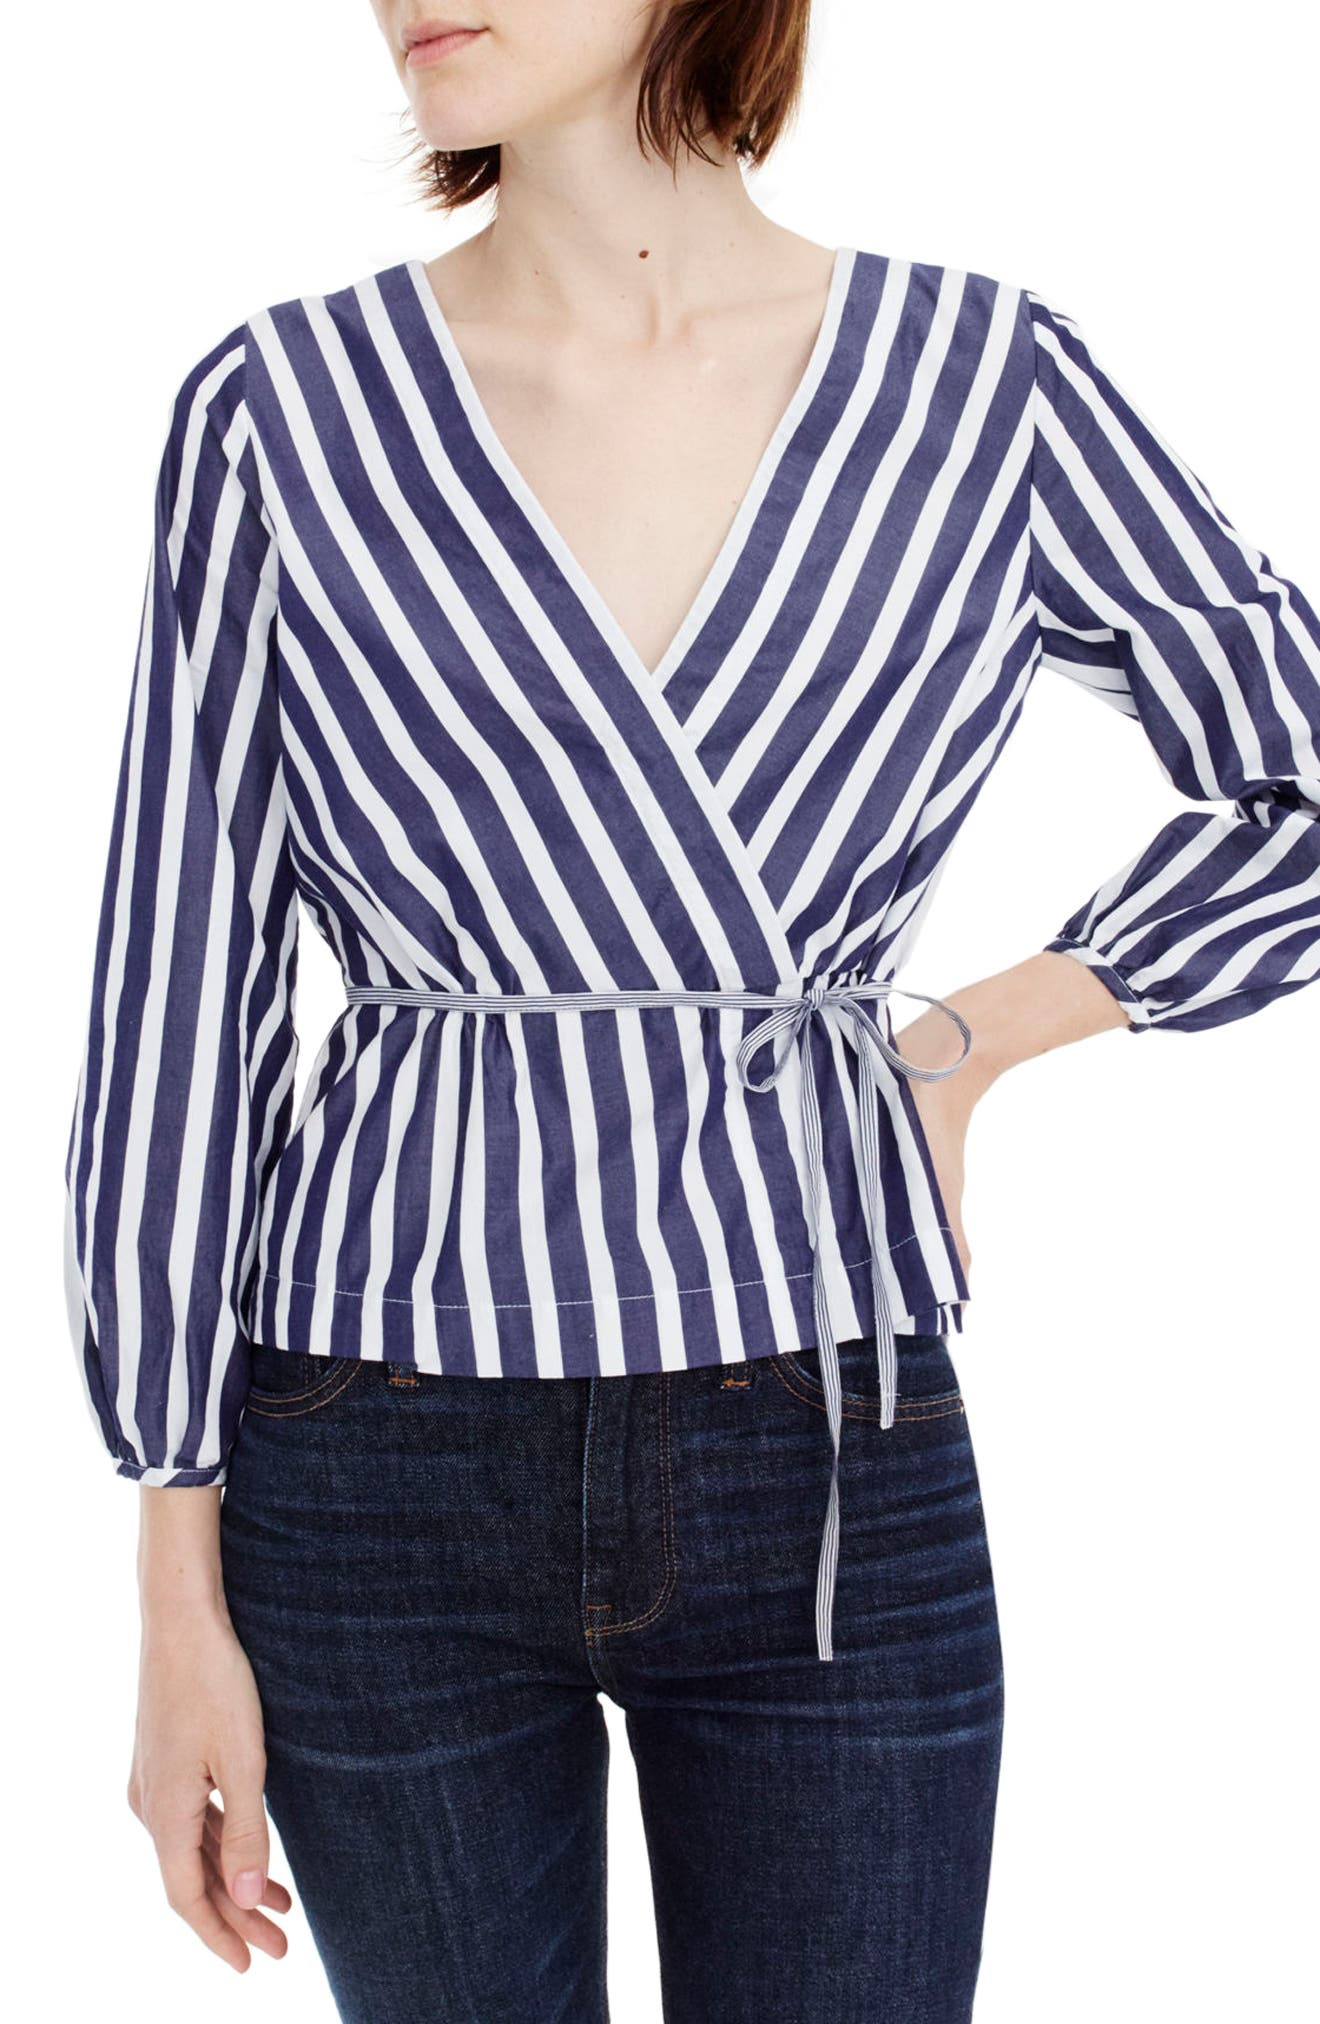 J.Crew Stripe Faux Wrap Top,                             Main thumbnail 1, color,                             Navy/ White